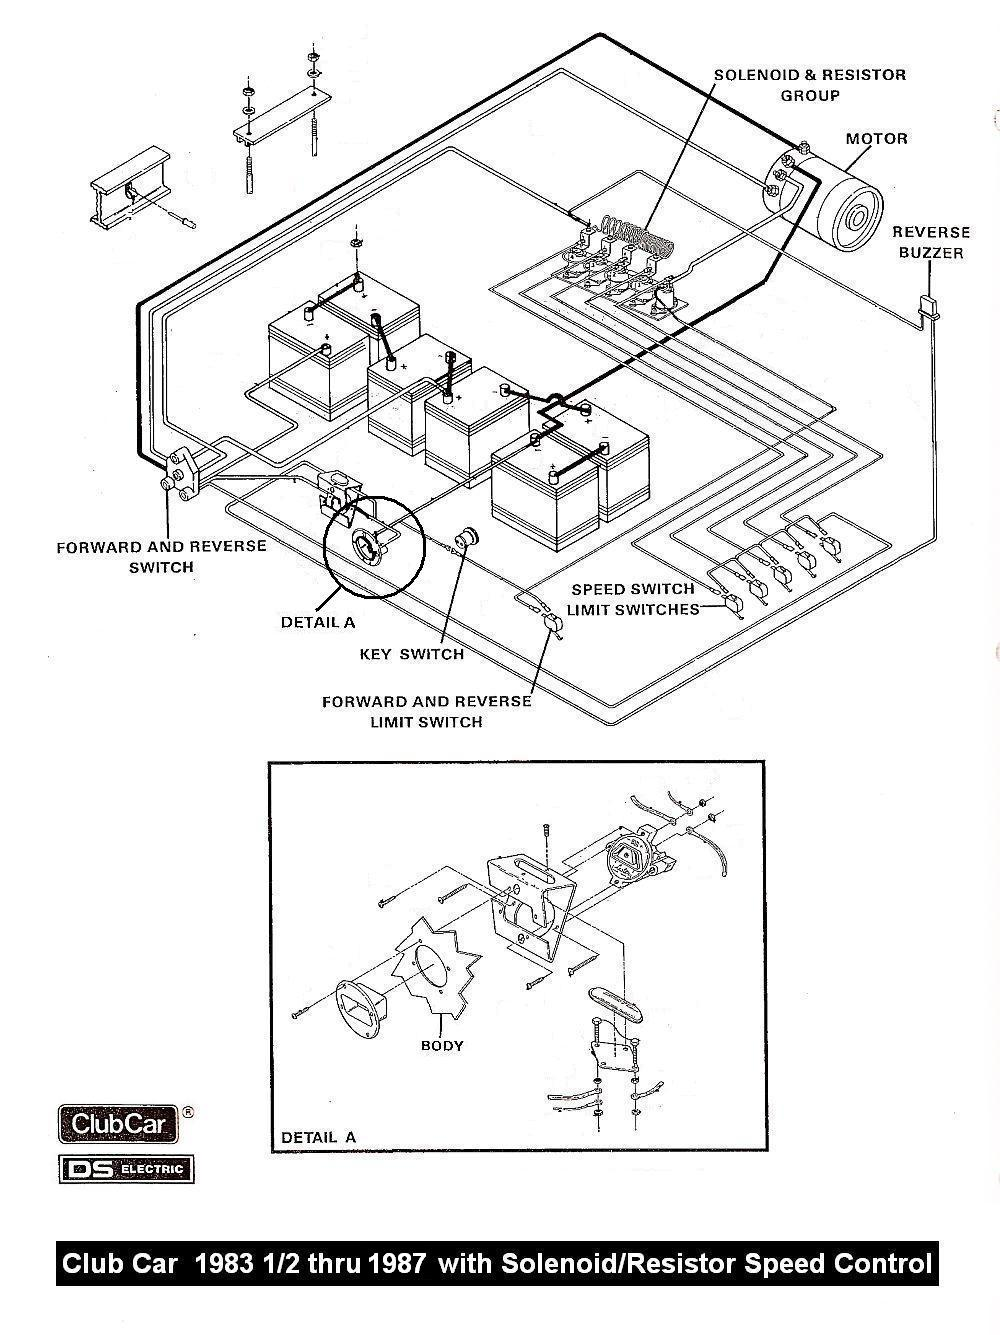 wiring diagram 36 volt golf cart batteries with 890uq Club Car Ds 1986 Club Car Sudden on Club Car Wiring Diagram Ignition Swich as well 4hgmy Cart The Reverse Button Does Not Cause Audible Buzz moreover 454 likewise 890uq Club Car Ds 1986 Club Car Sudden in addition 852y9 Electric Vehicles Ez Go 2005 Ez Go Fleet Golf Cart.